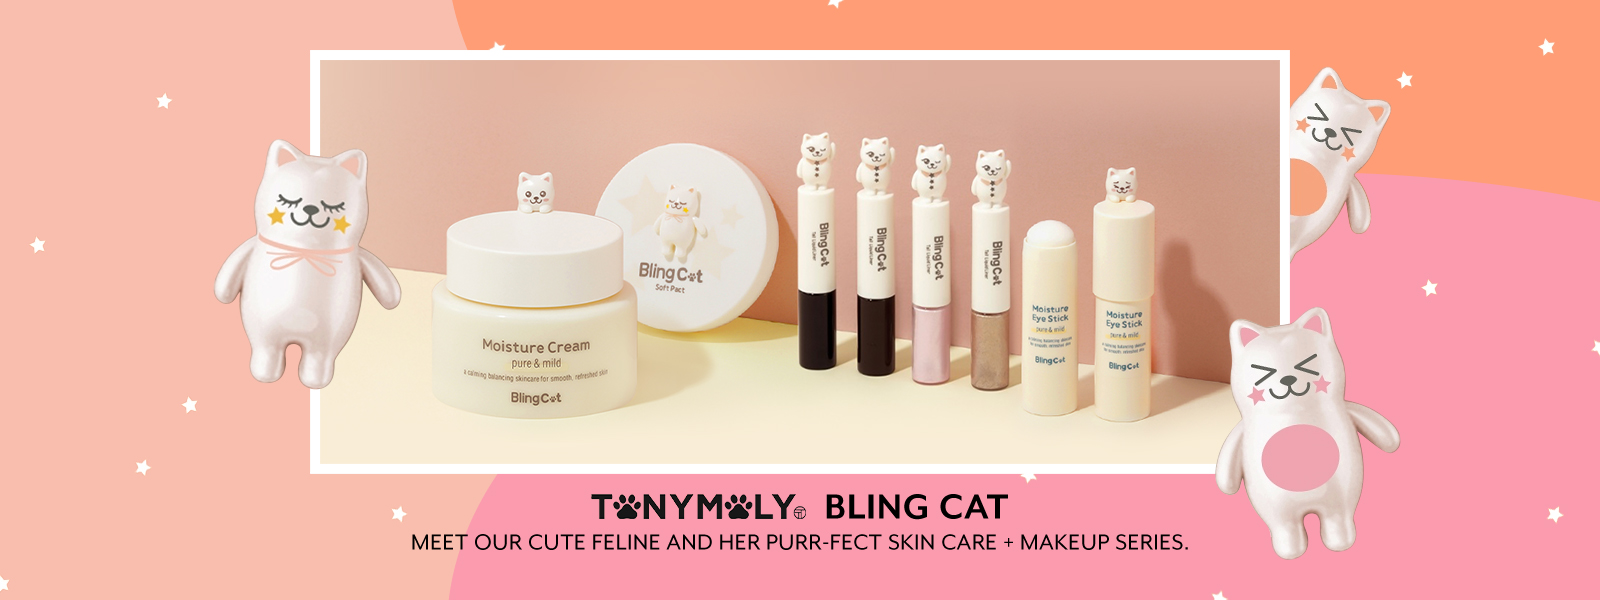 Jul 2019: Tony Moly Bling Cat